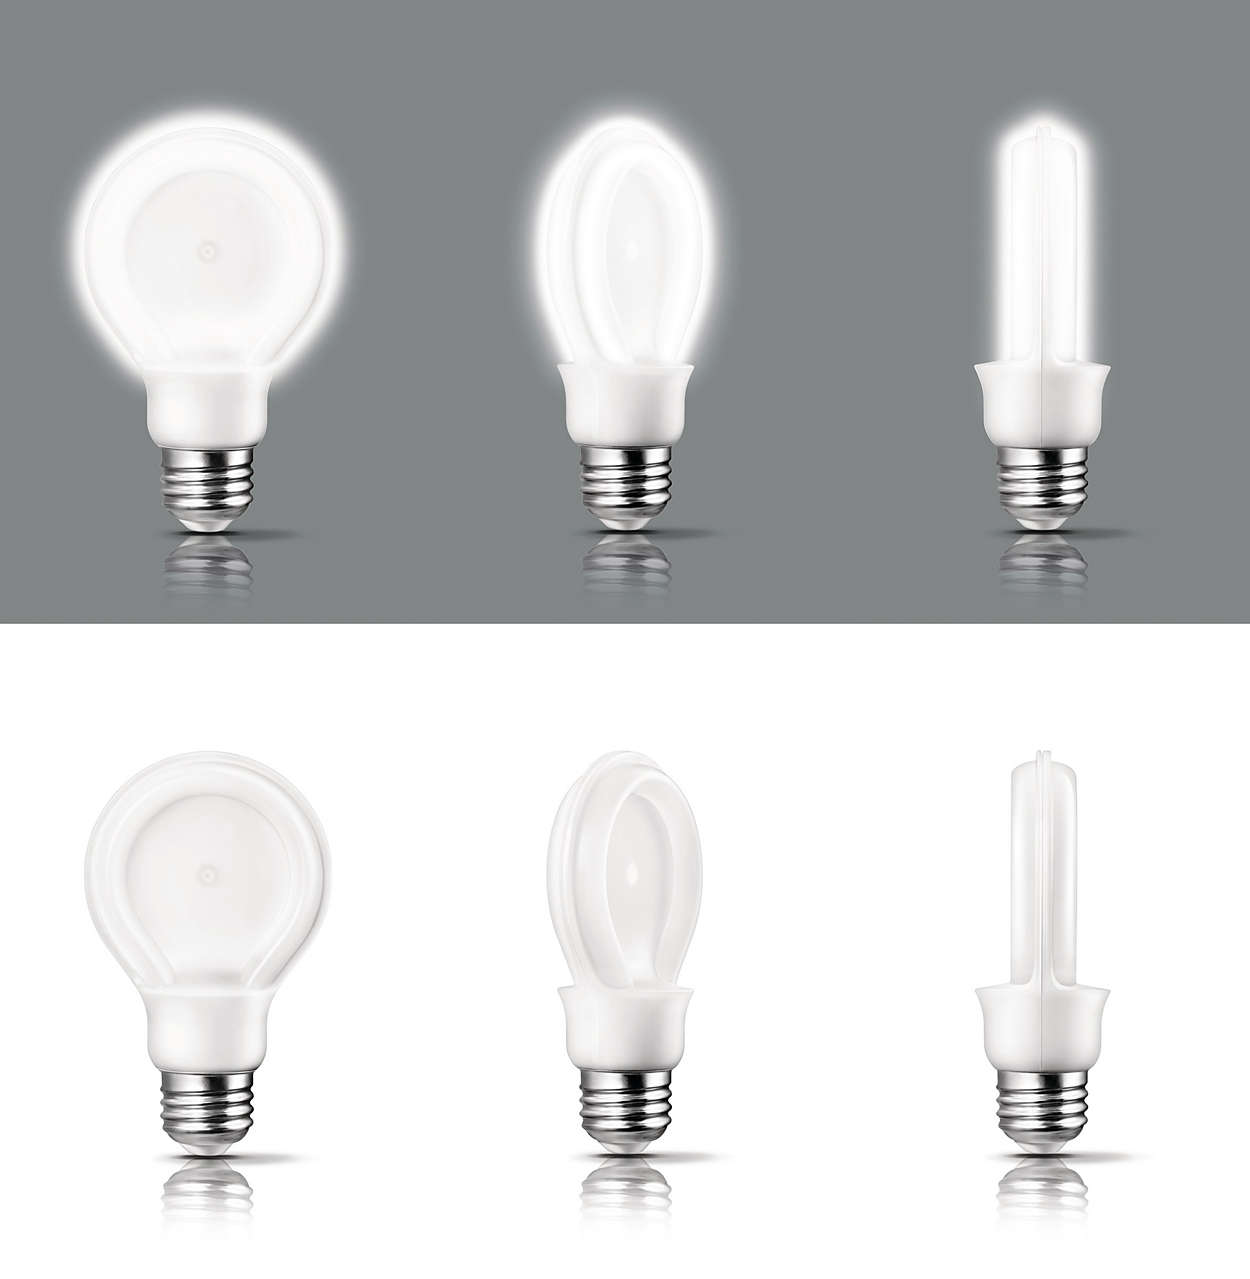 Buy SlimStyle A19 10.5w Soft White LED Bulb | Philips Lighting